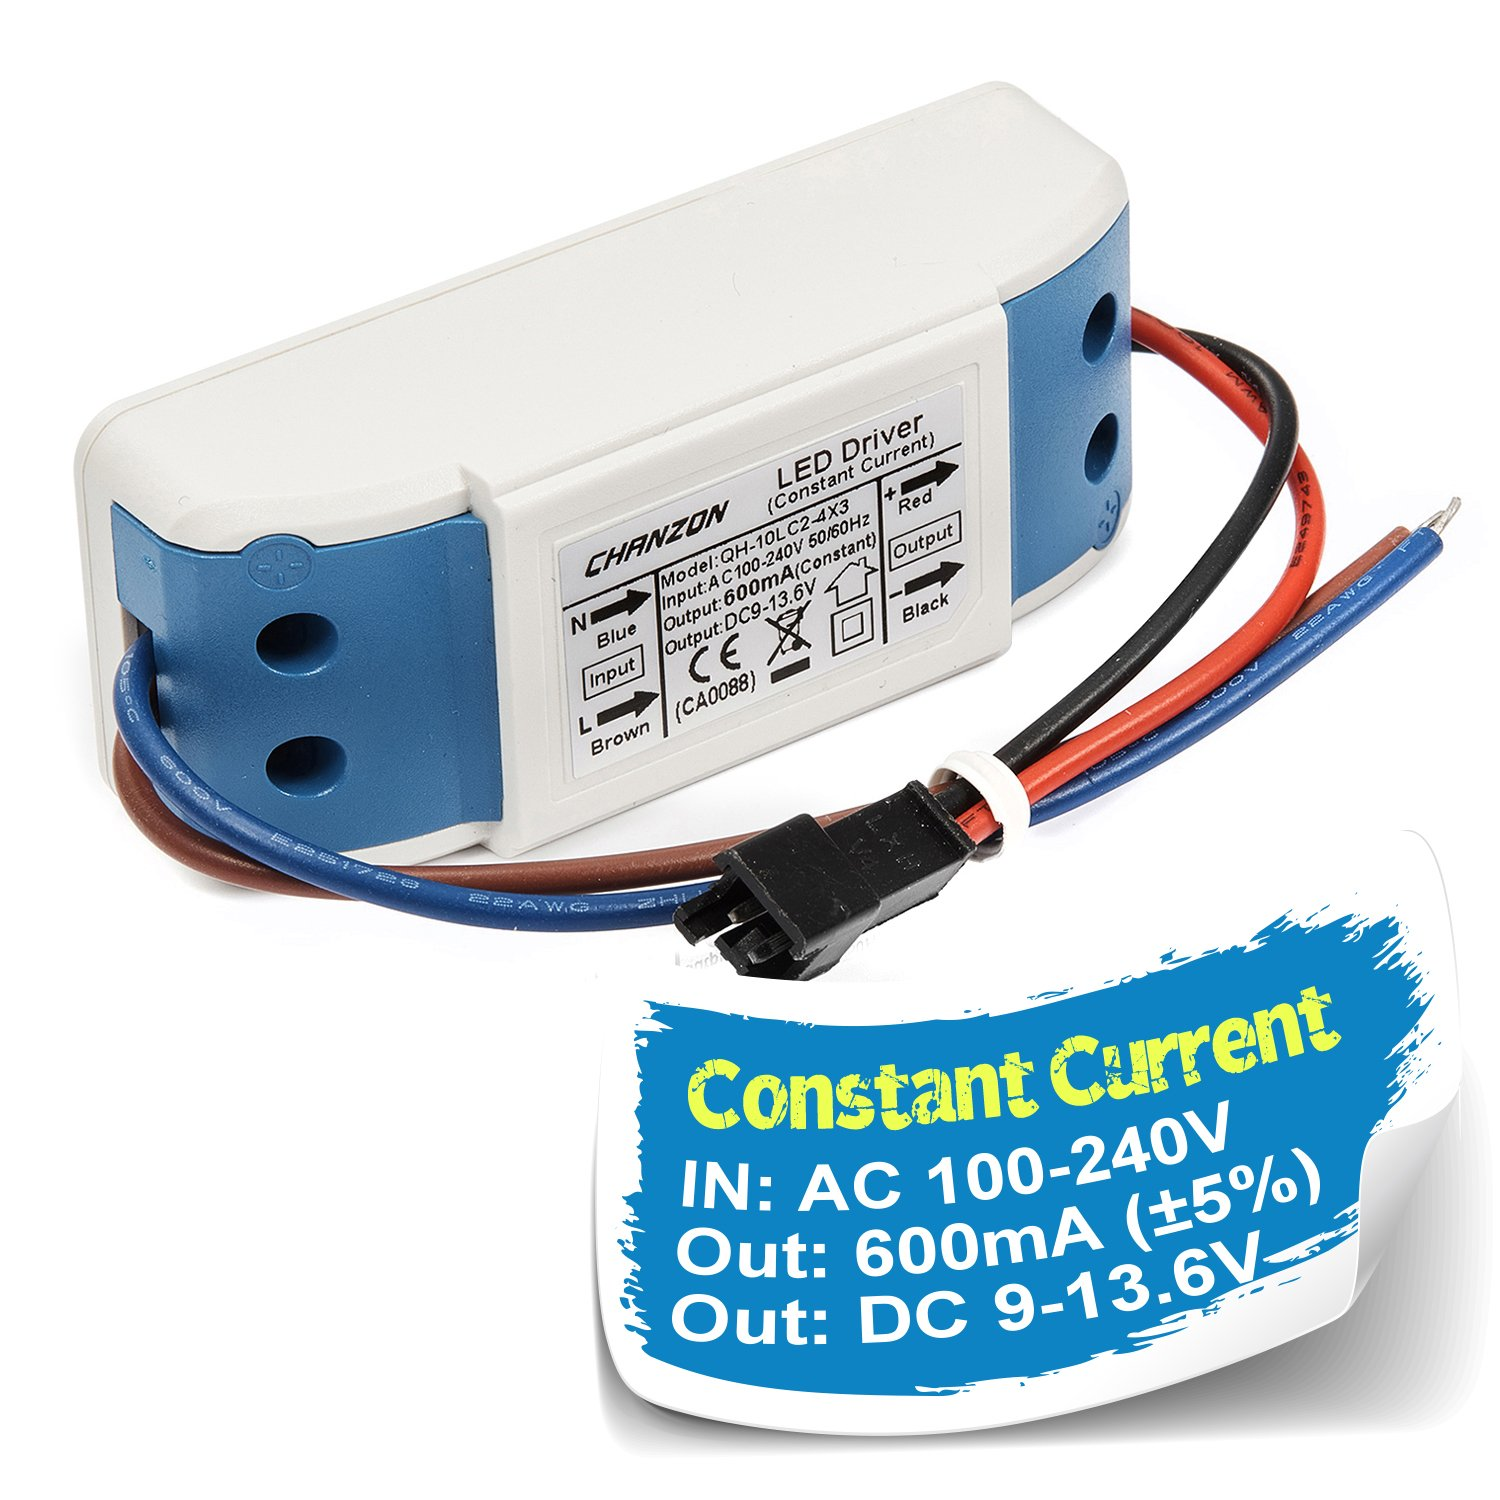 Cheap Constant Current Led Driver Schematic Find 1w Circuit Chanzon 600ma Output 9v 136v Input 85